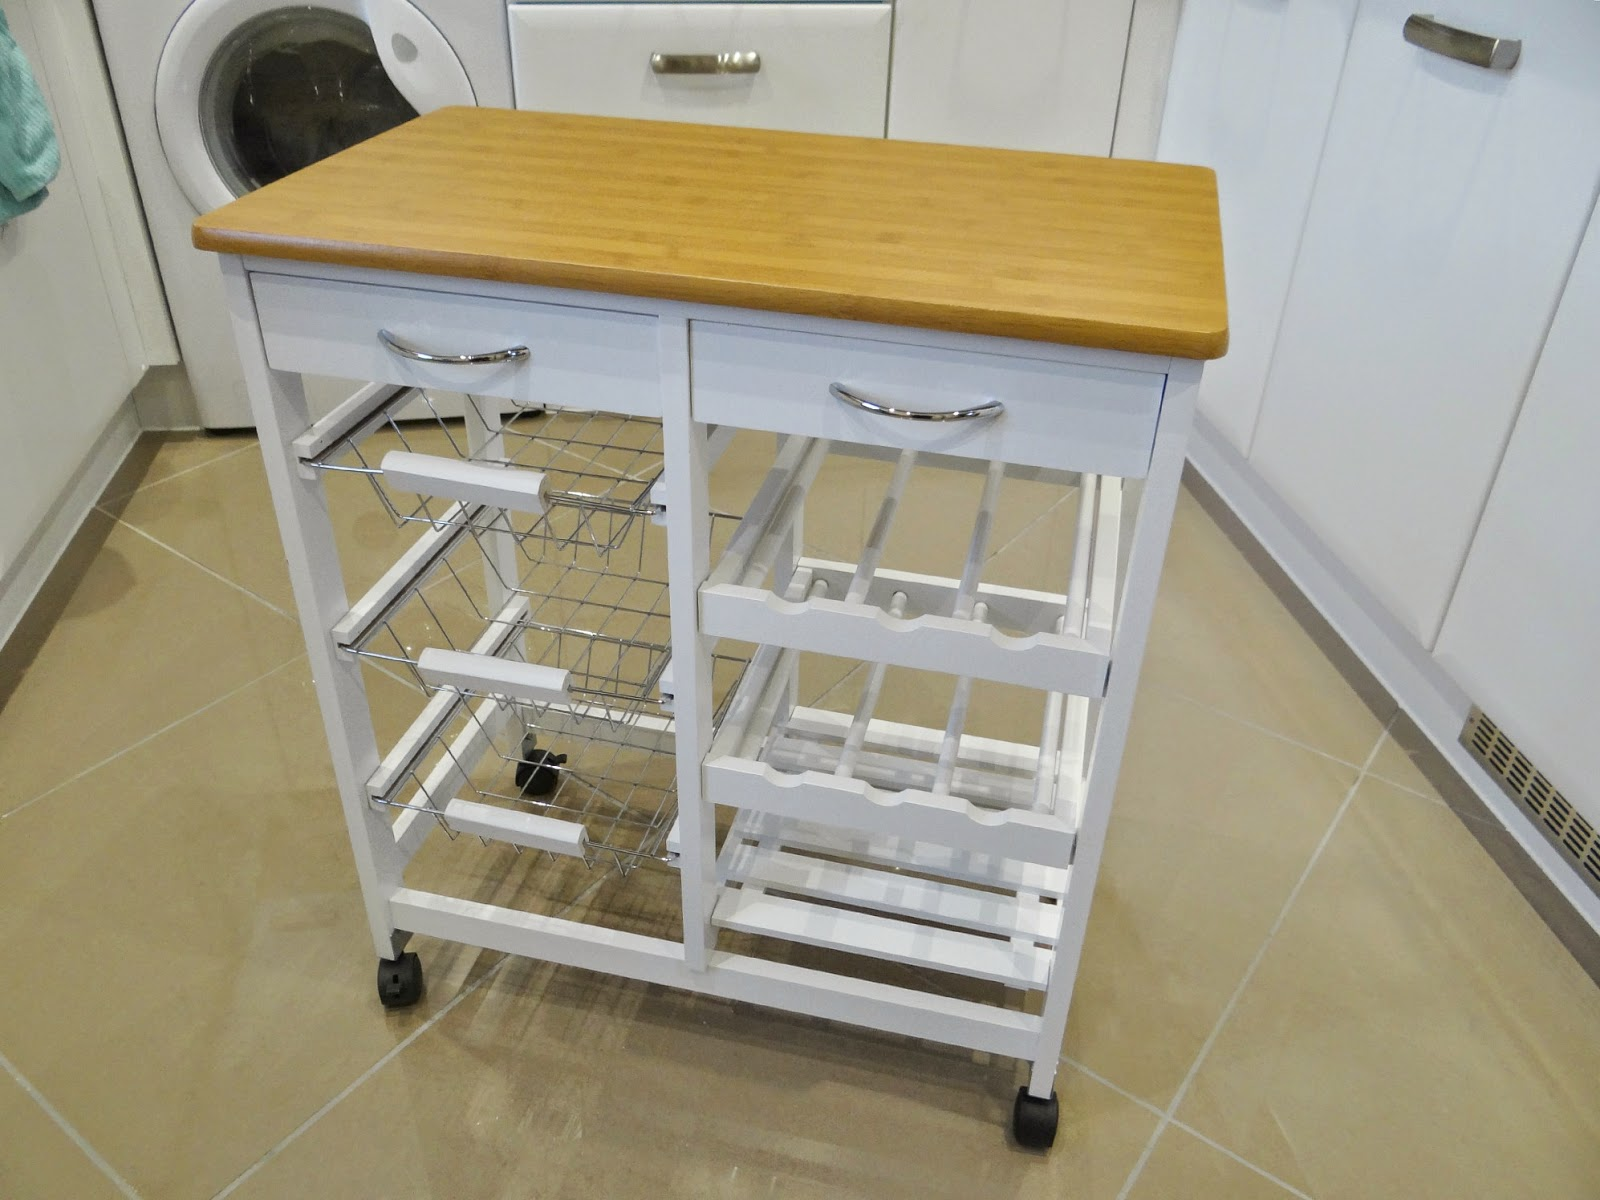 Kitchen Trolley, Trueshopping, Barbecue table